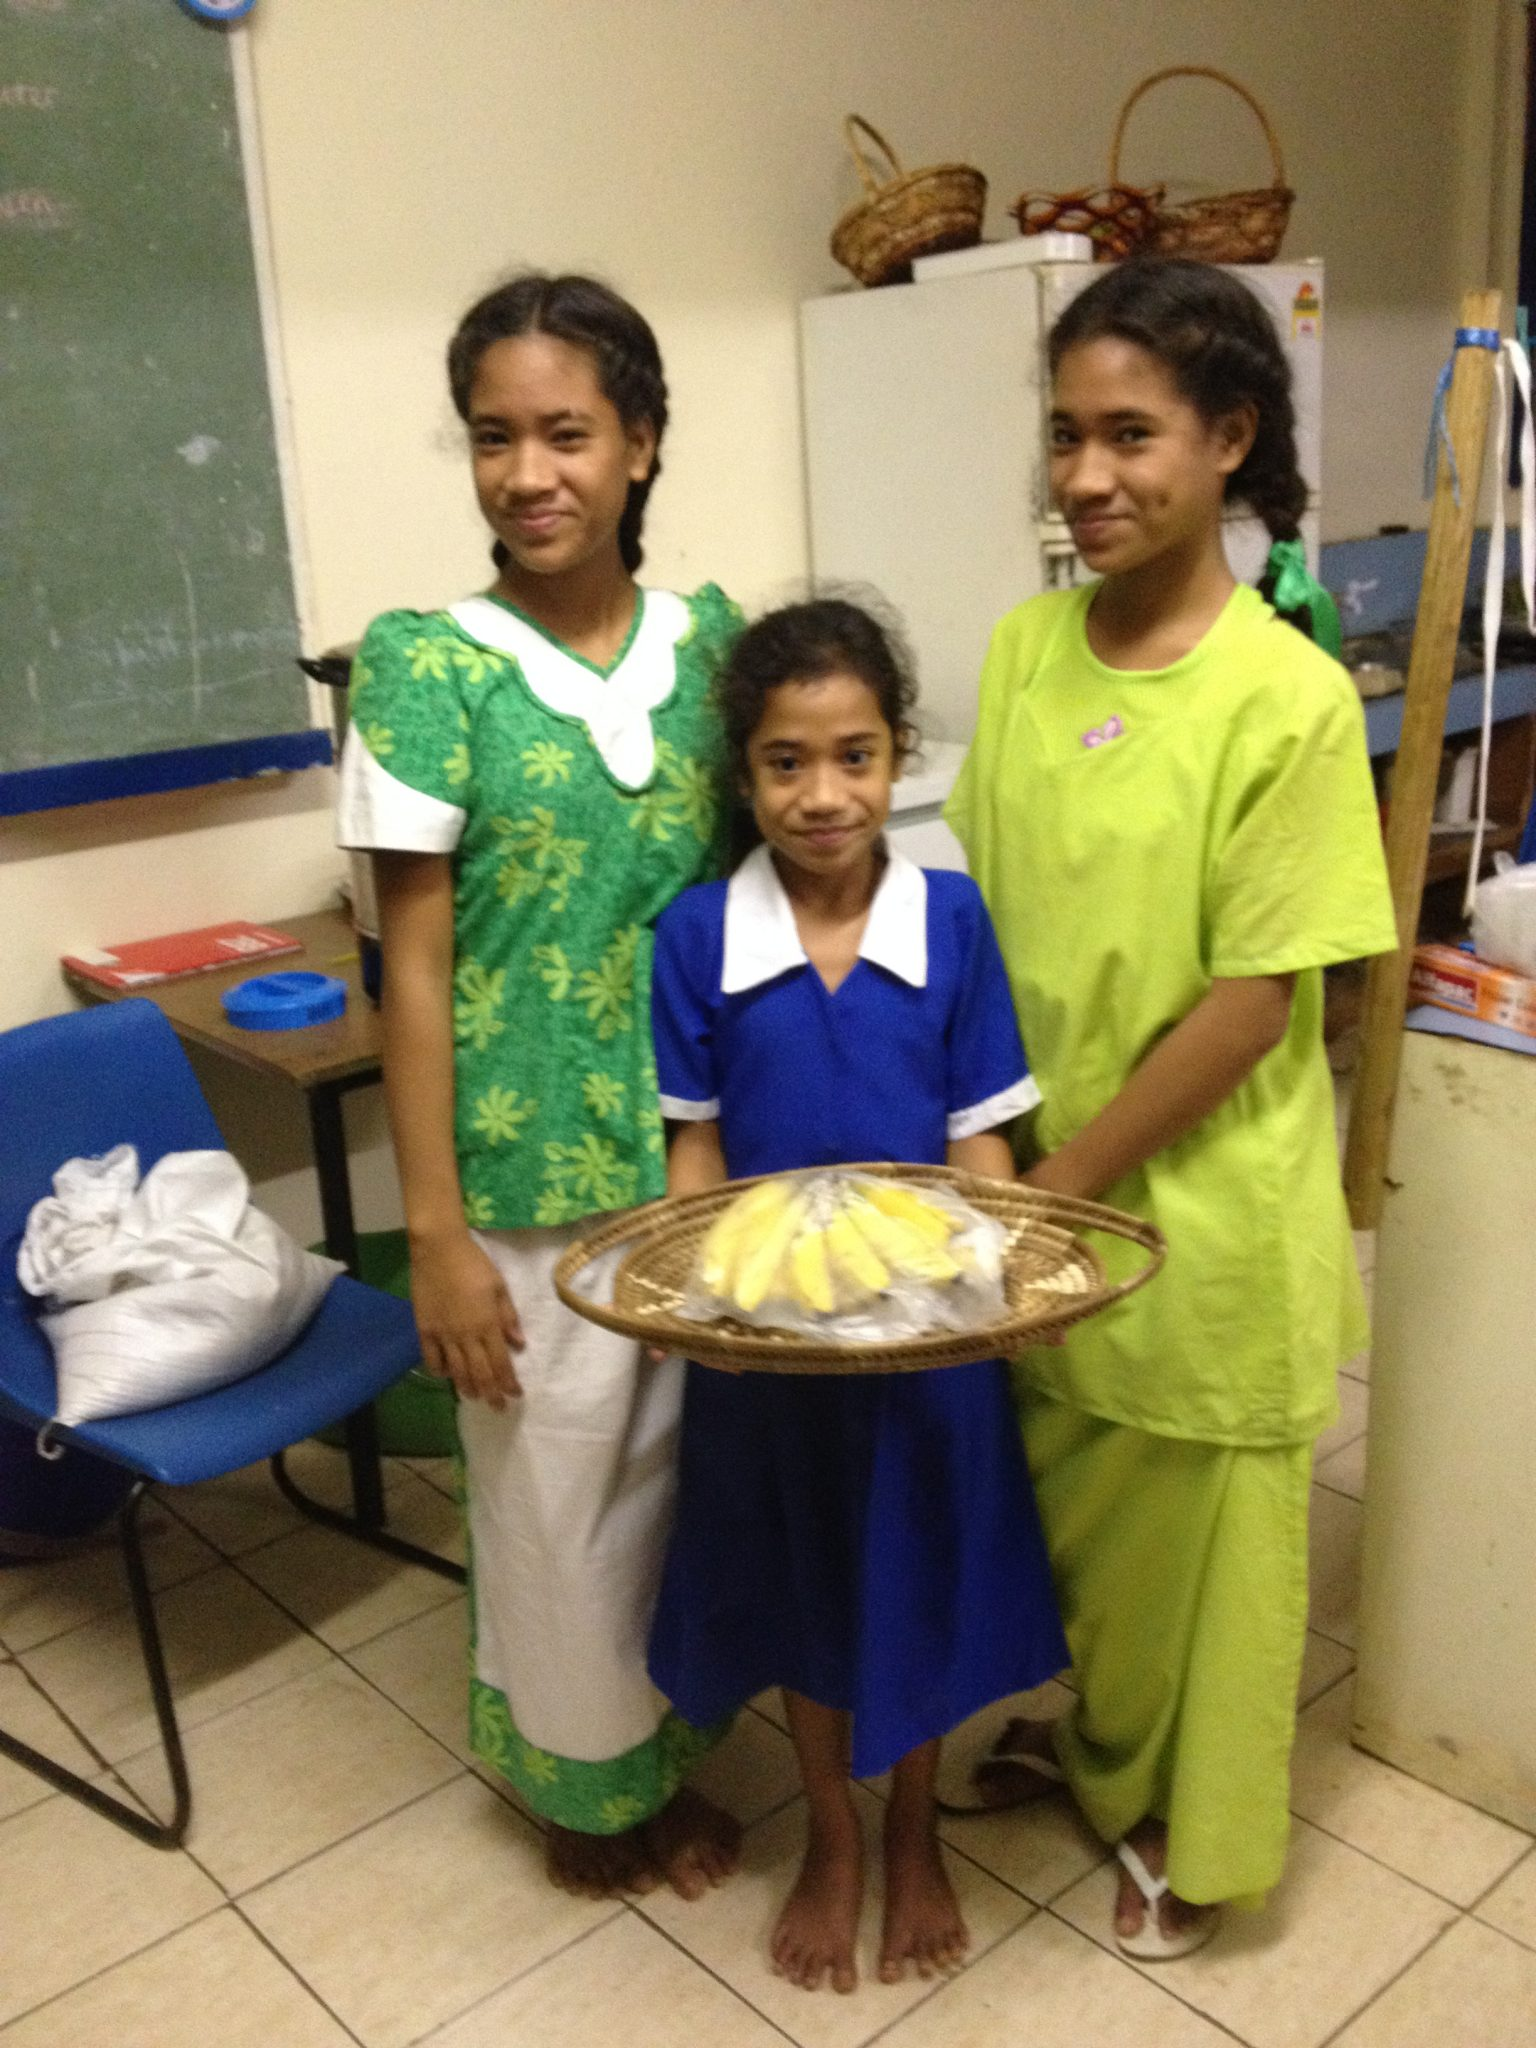 37. These beautiful Tongan sisters, Kilisitina, Otolose, Tiara, and their parents gave us a wonderful woven basket full of bananas. They made the basket in school!